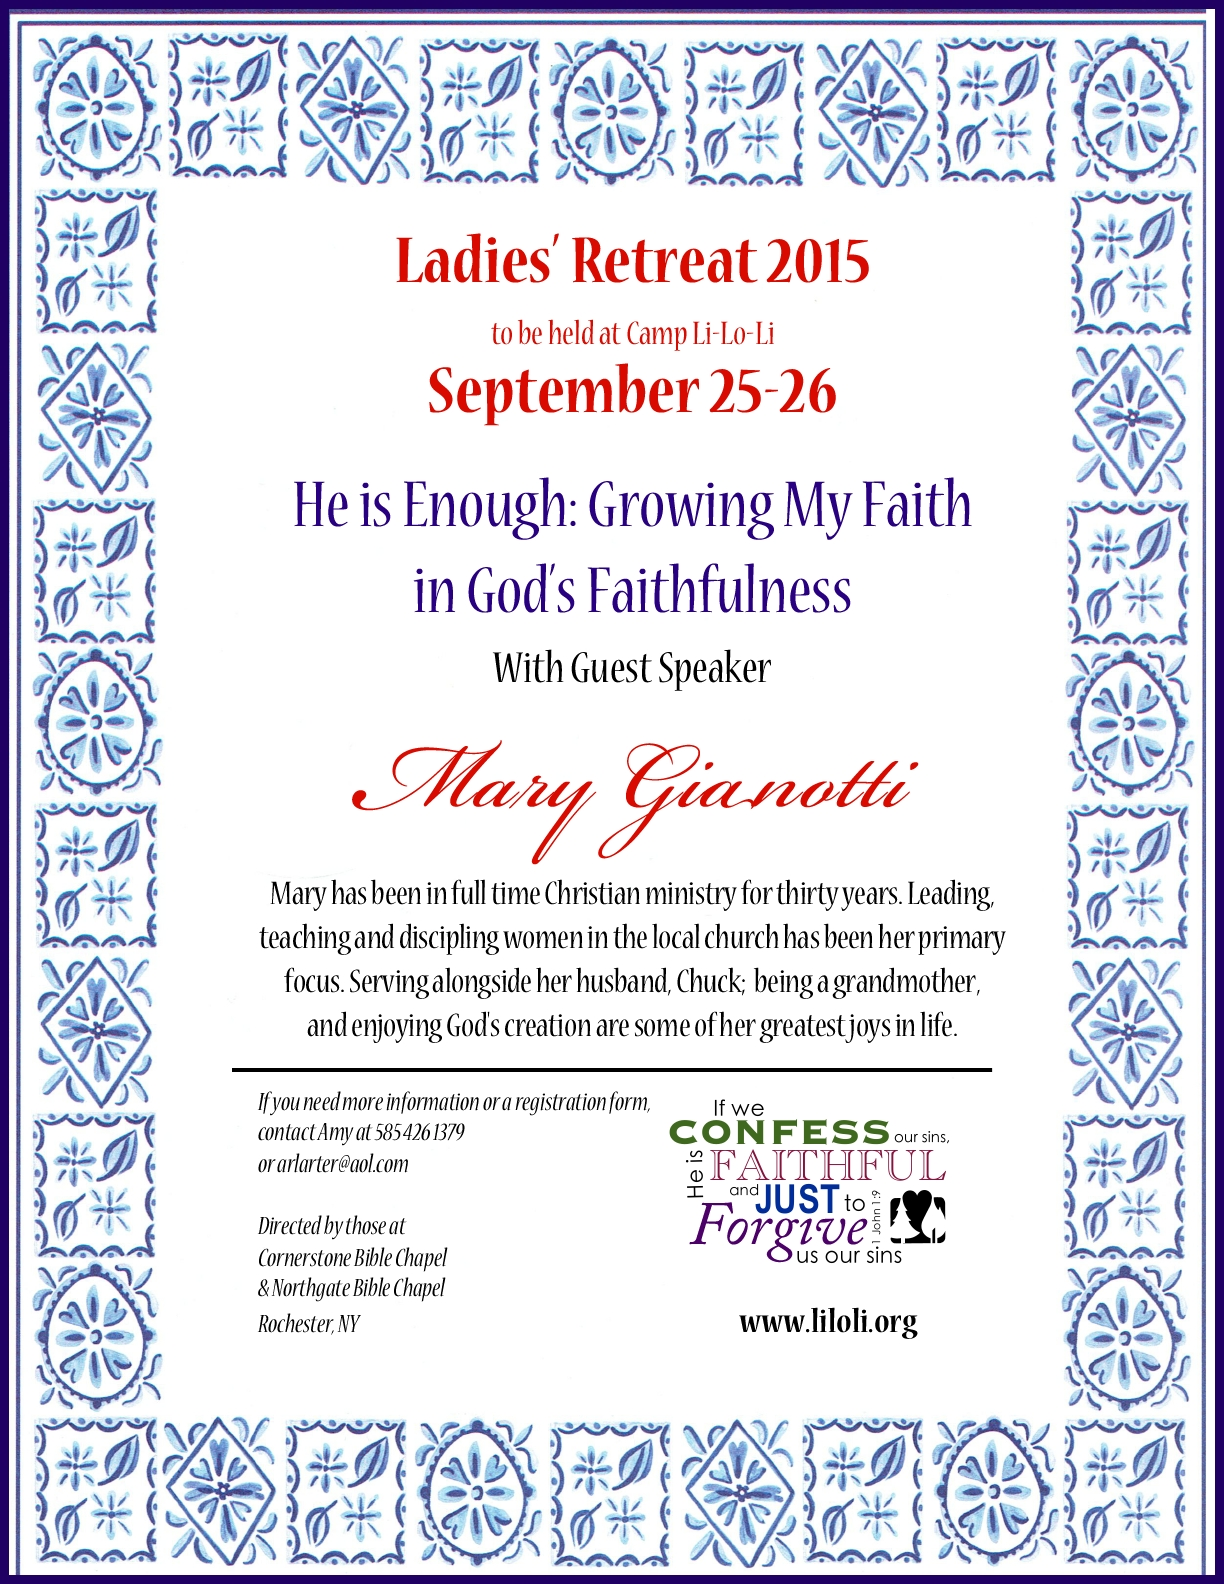 Registration is now open for the Ladies Fall Retreat at Camp LiLoLi